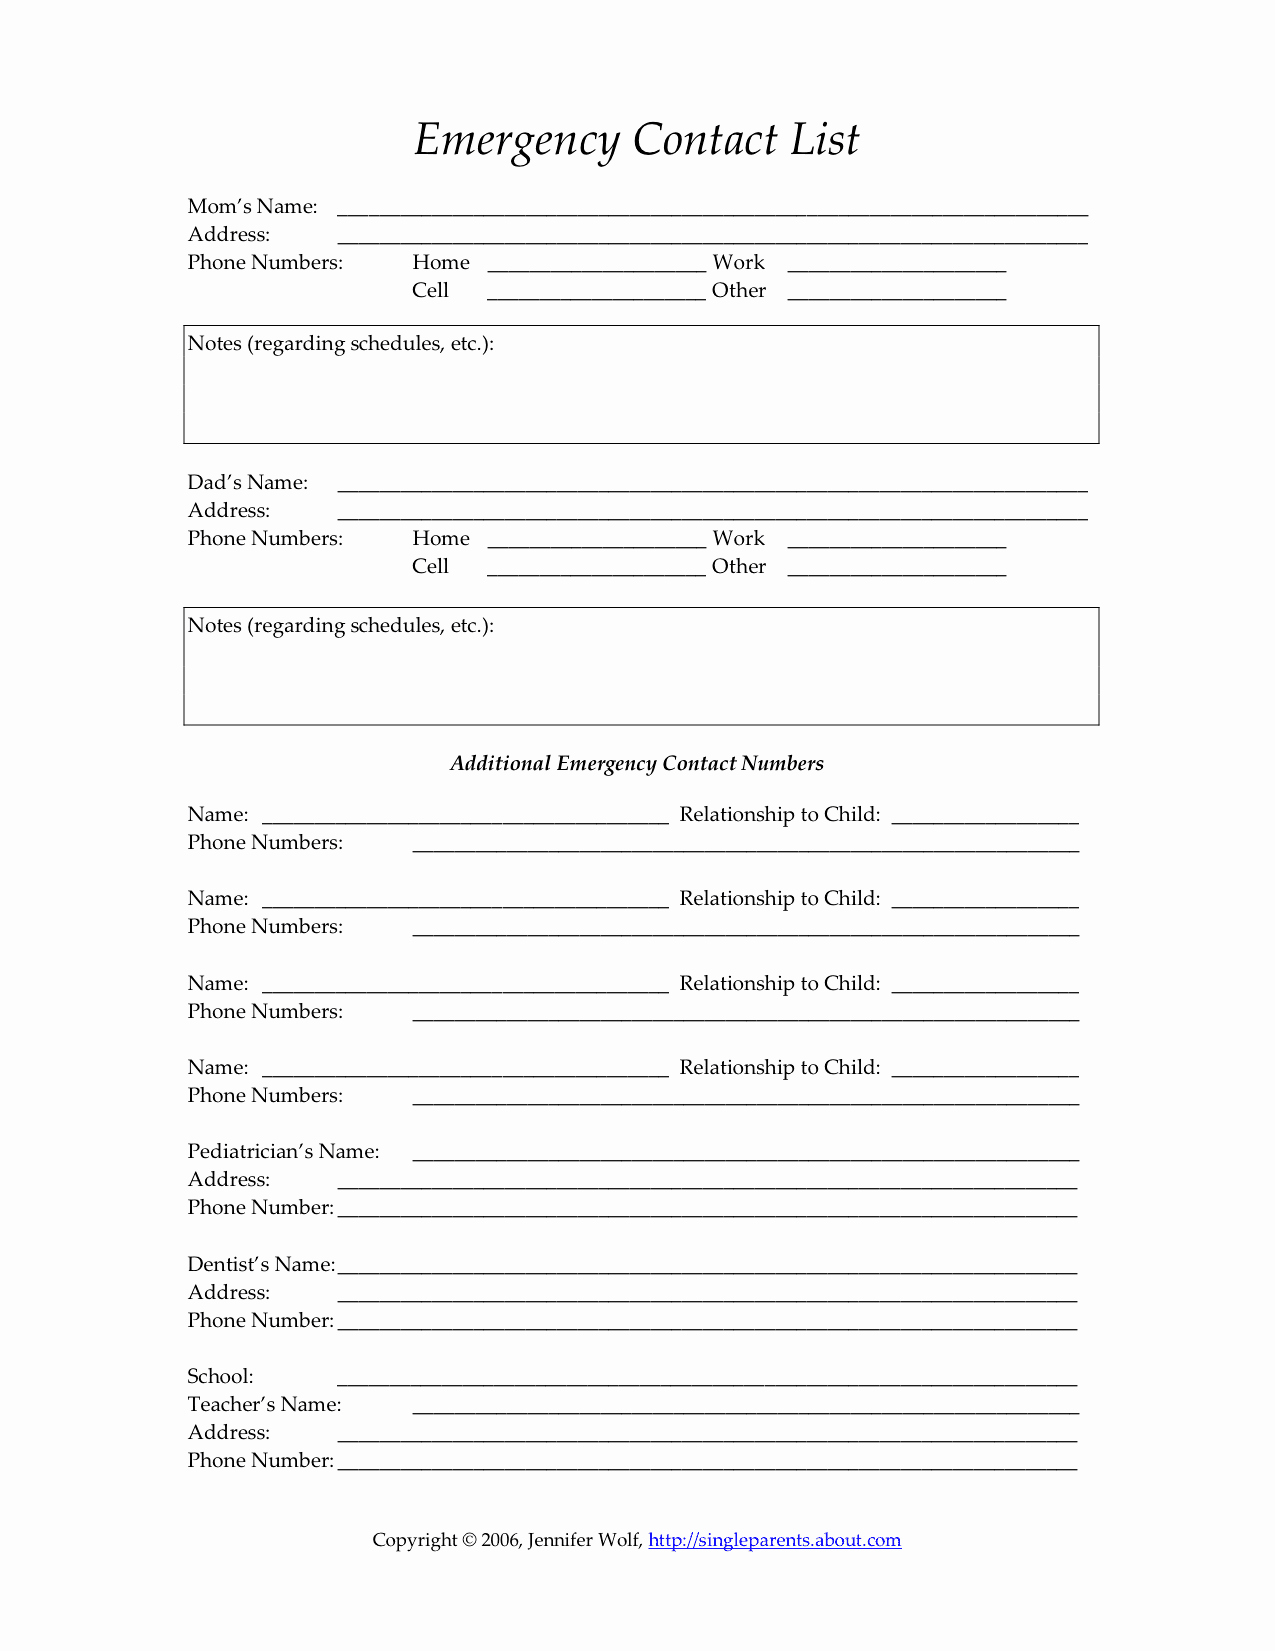 printable emergency contact form